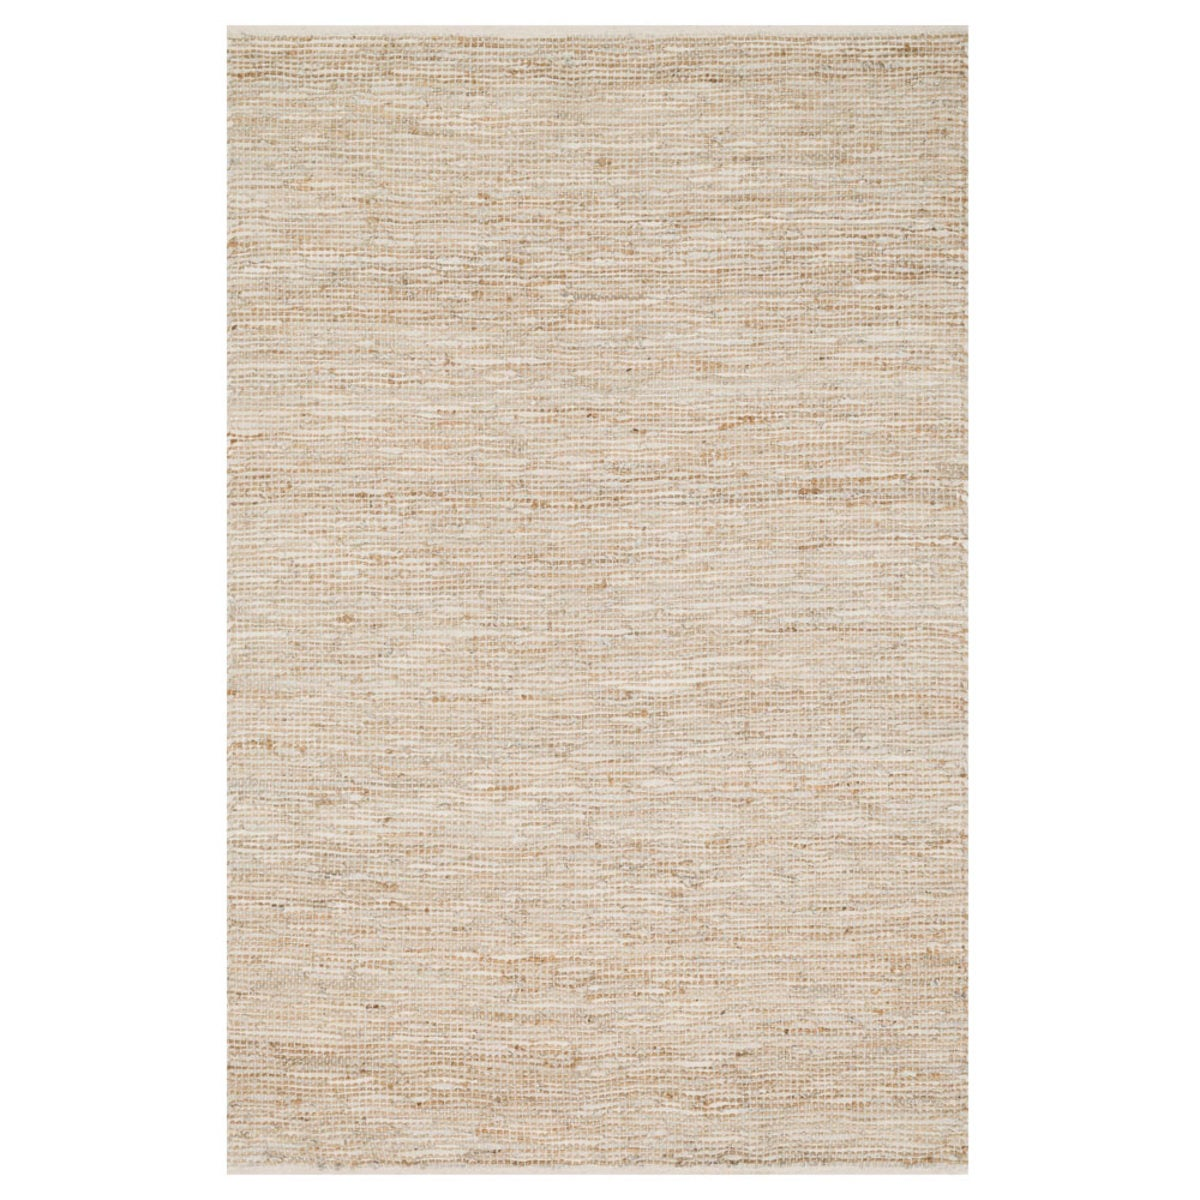 "Loloi Edge Leather & Jute Rug in Brown - 3'6"" x 5'6""  - Ivory"